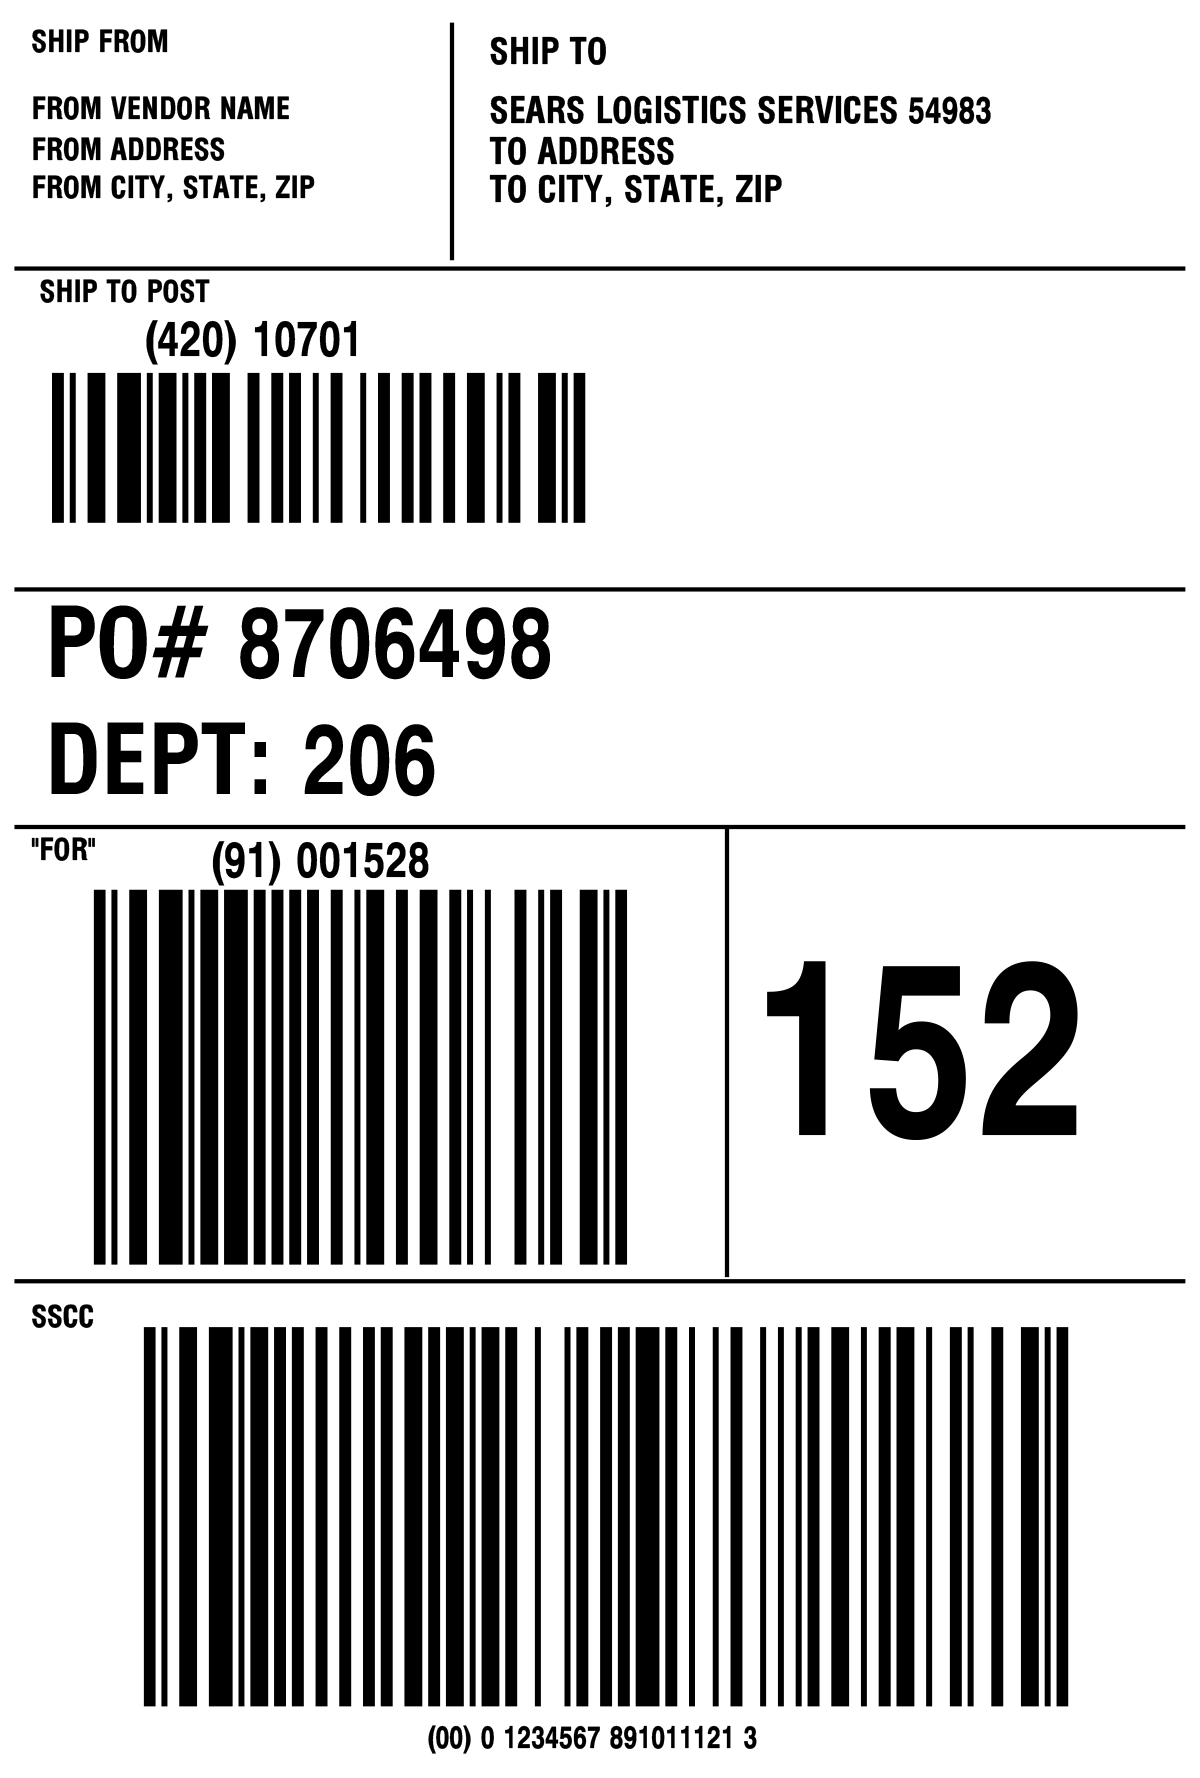 Print out UPS Ground shipping labels with MarkMagic barcode labeling and printing software.